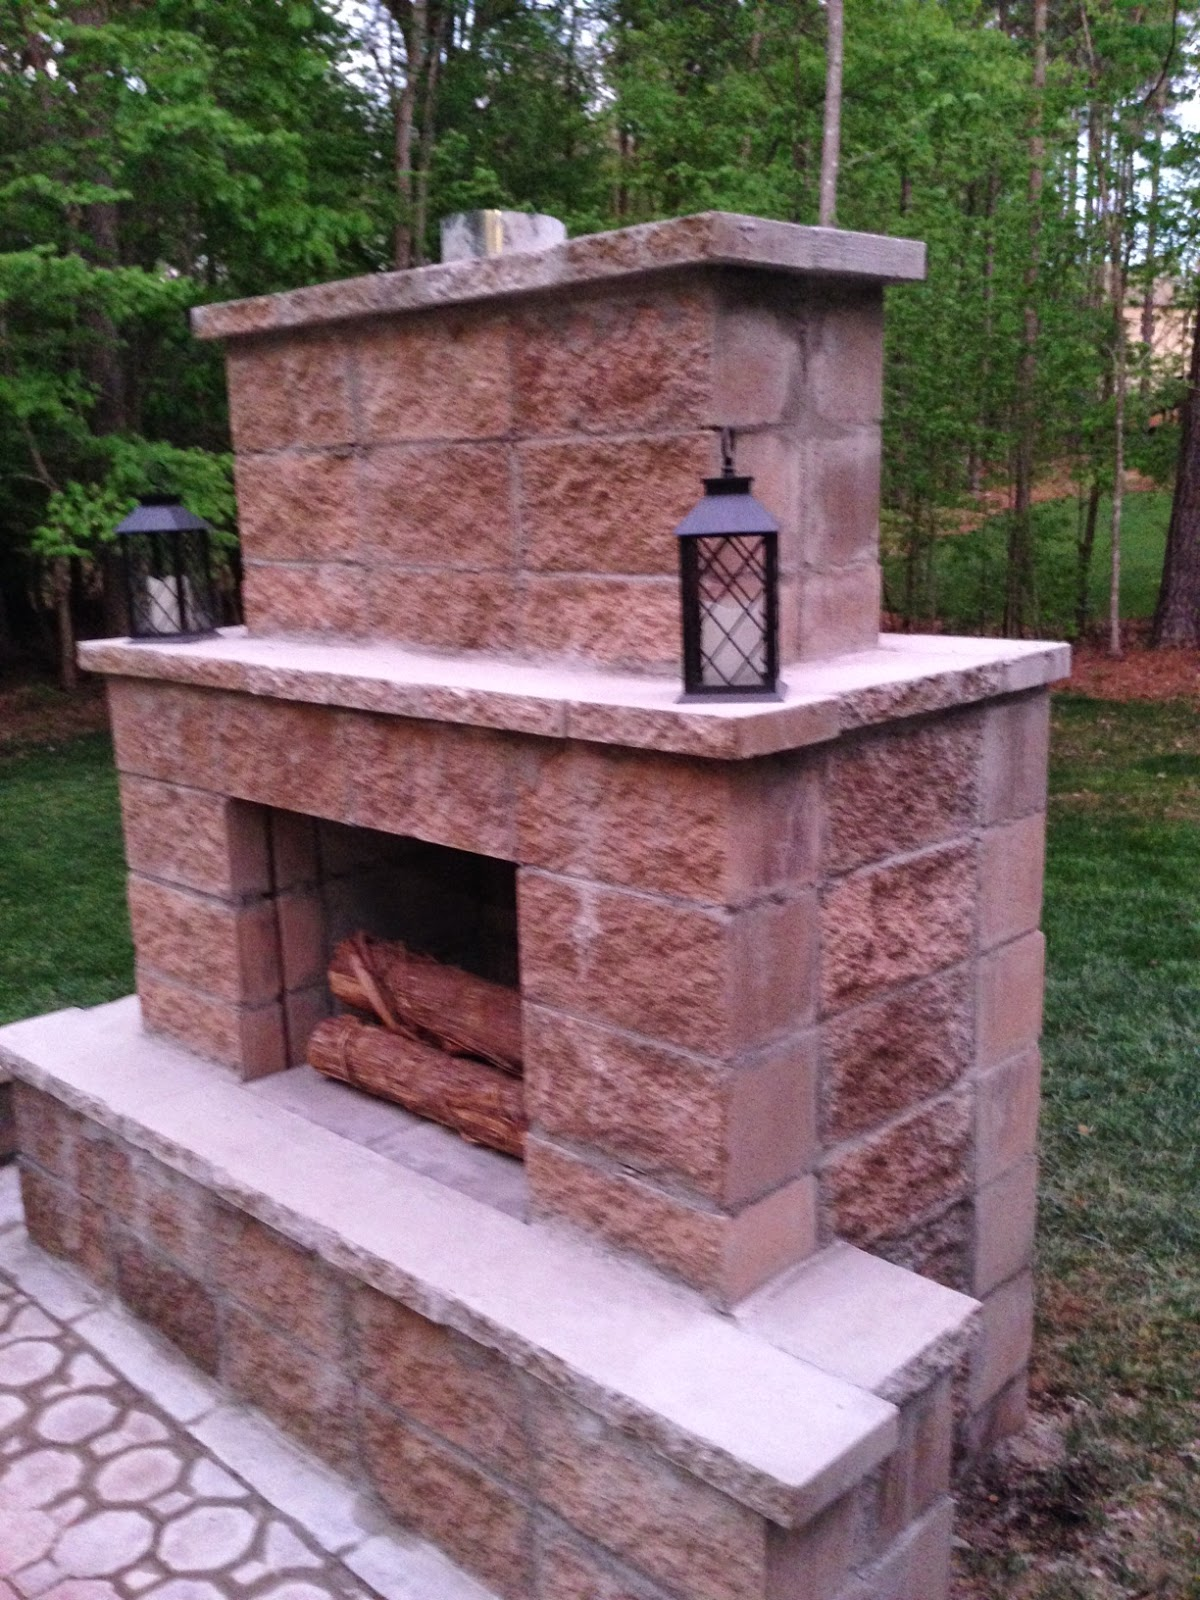 Life in the barbie dream house diy paver patio and for Patio fireplace plans